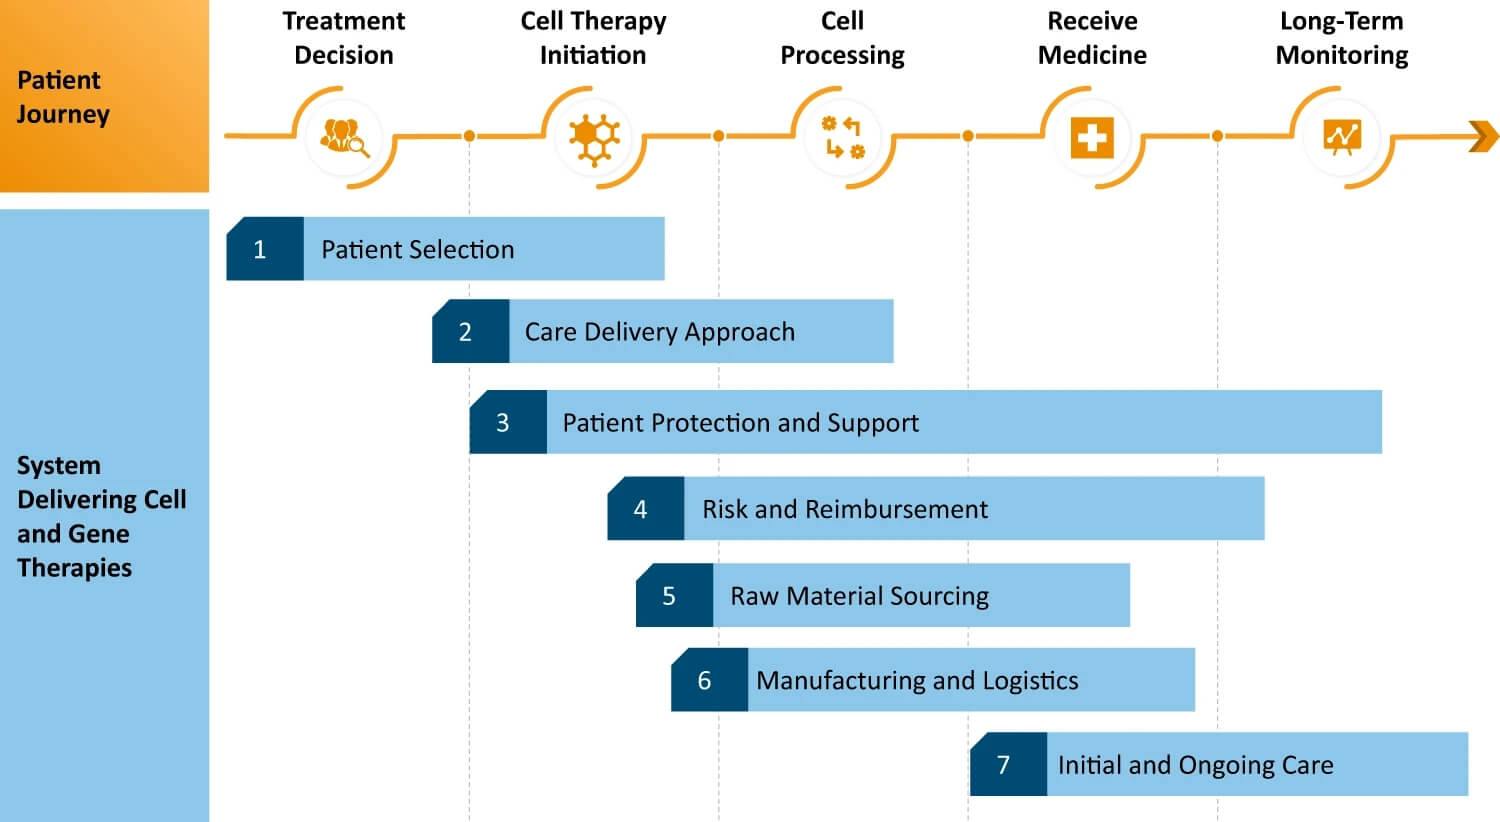 System for delivering individualized, autologous, ex vivo, cellular therapies.